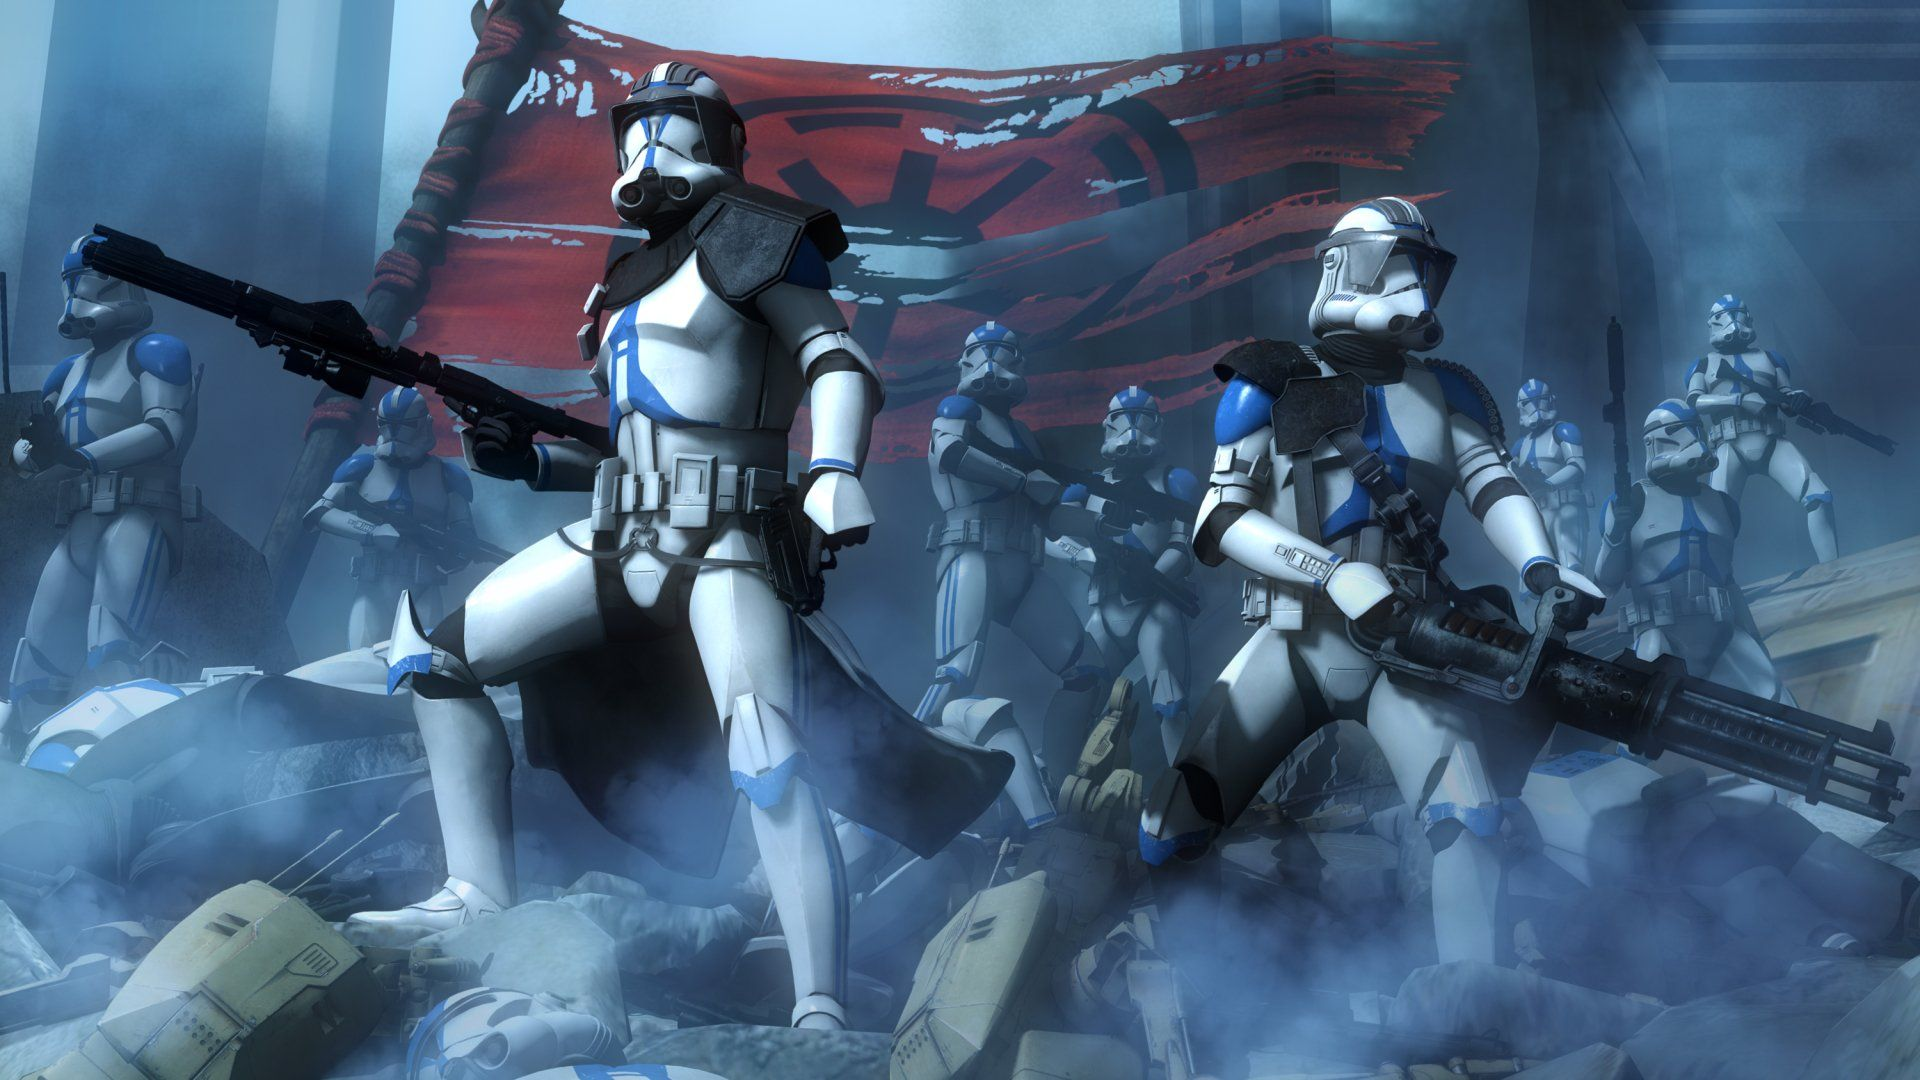 Pin By Charles Bledsoe On Star Wars Star Wars Clone Wars Star Wars Wallpaper Star Wars Pictures